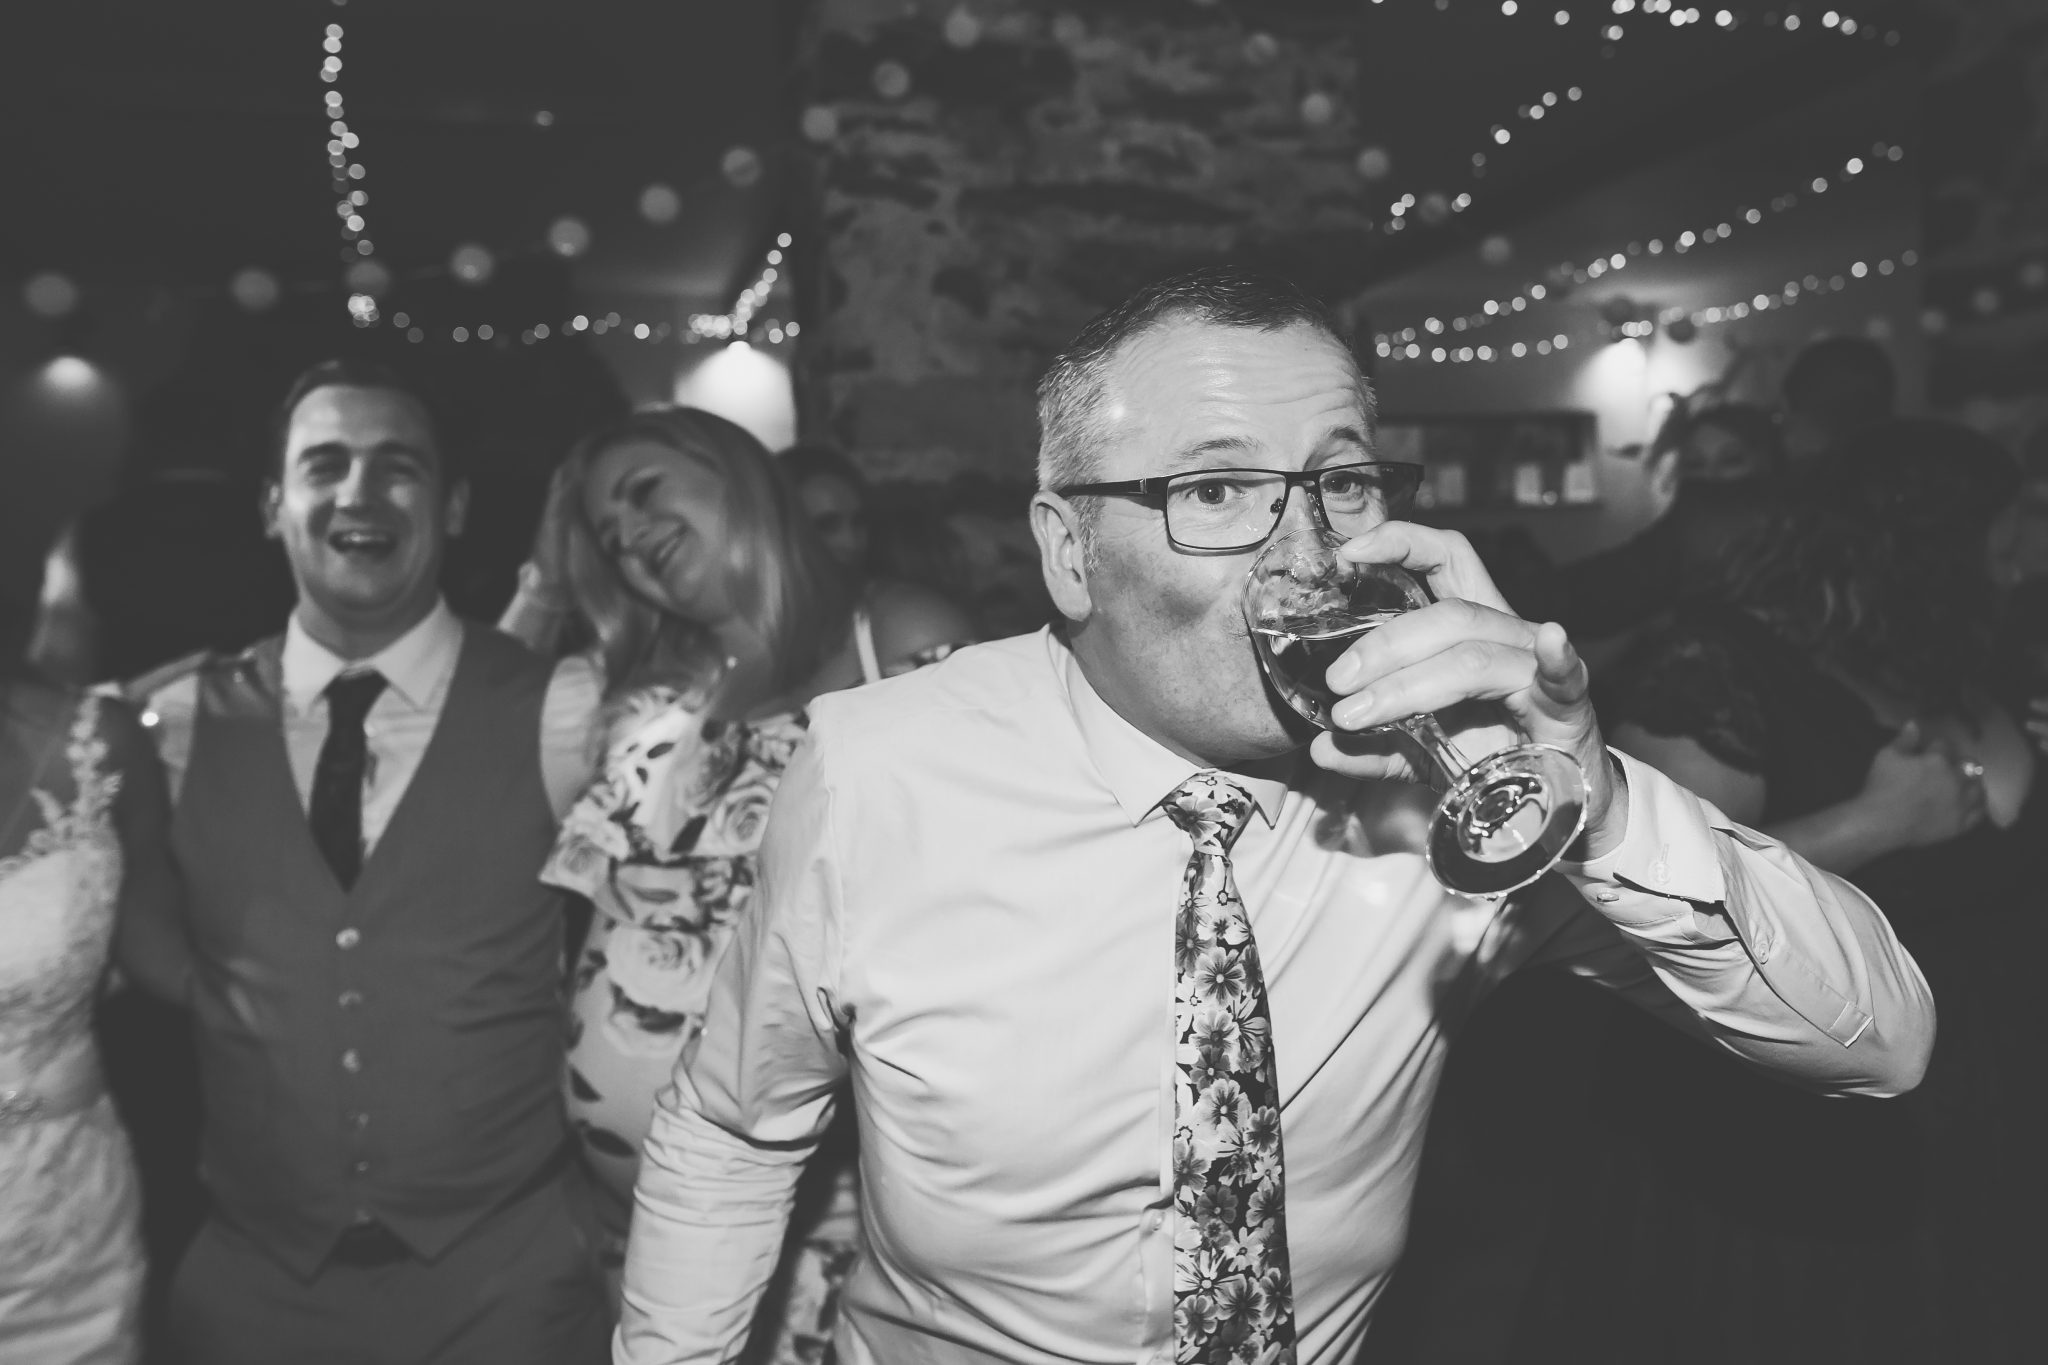 Wedding guest nearly falling with his drink